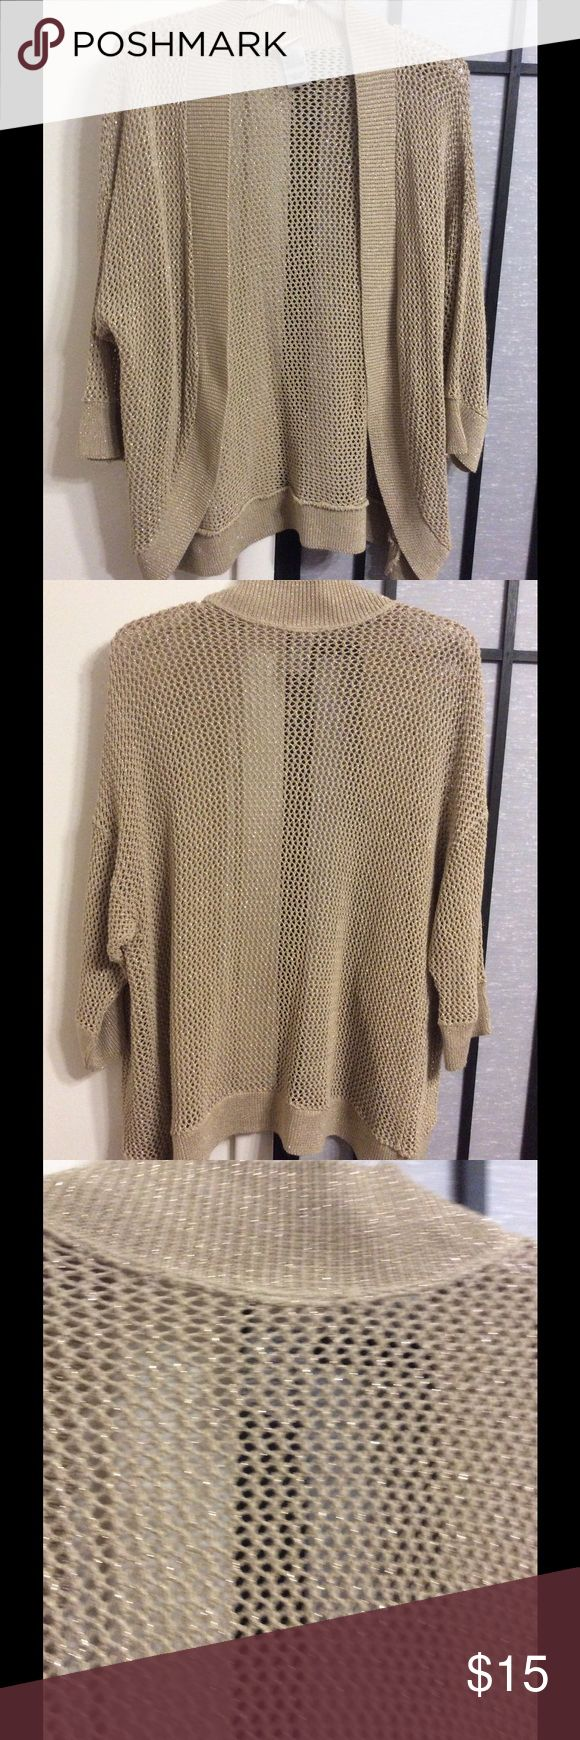 Beige with golden strands cover-up/shawl Beautiful shawl, long and able to cover arms n bootie if you want to tone it down. Very dressy and yet simple. Faded Glory Sweaters Shrugs & Ponchos